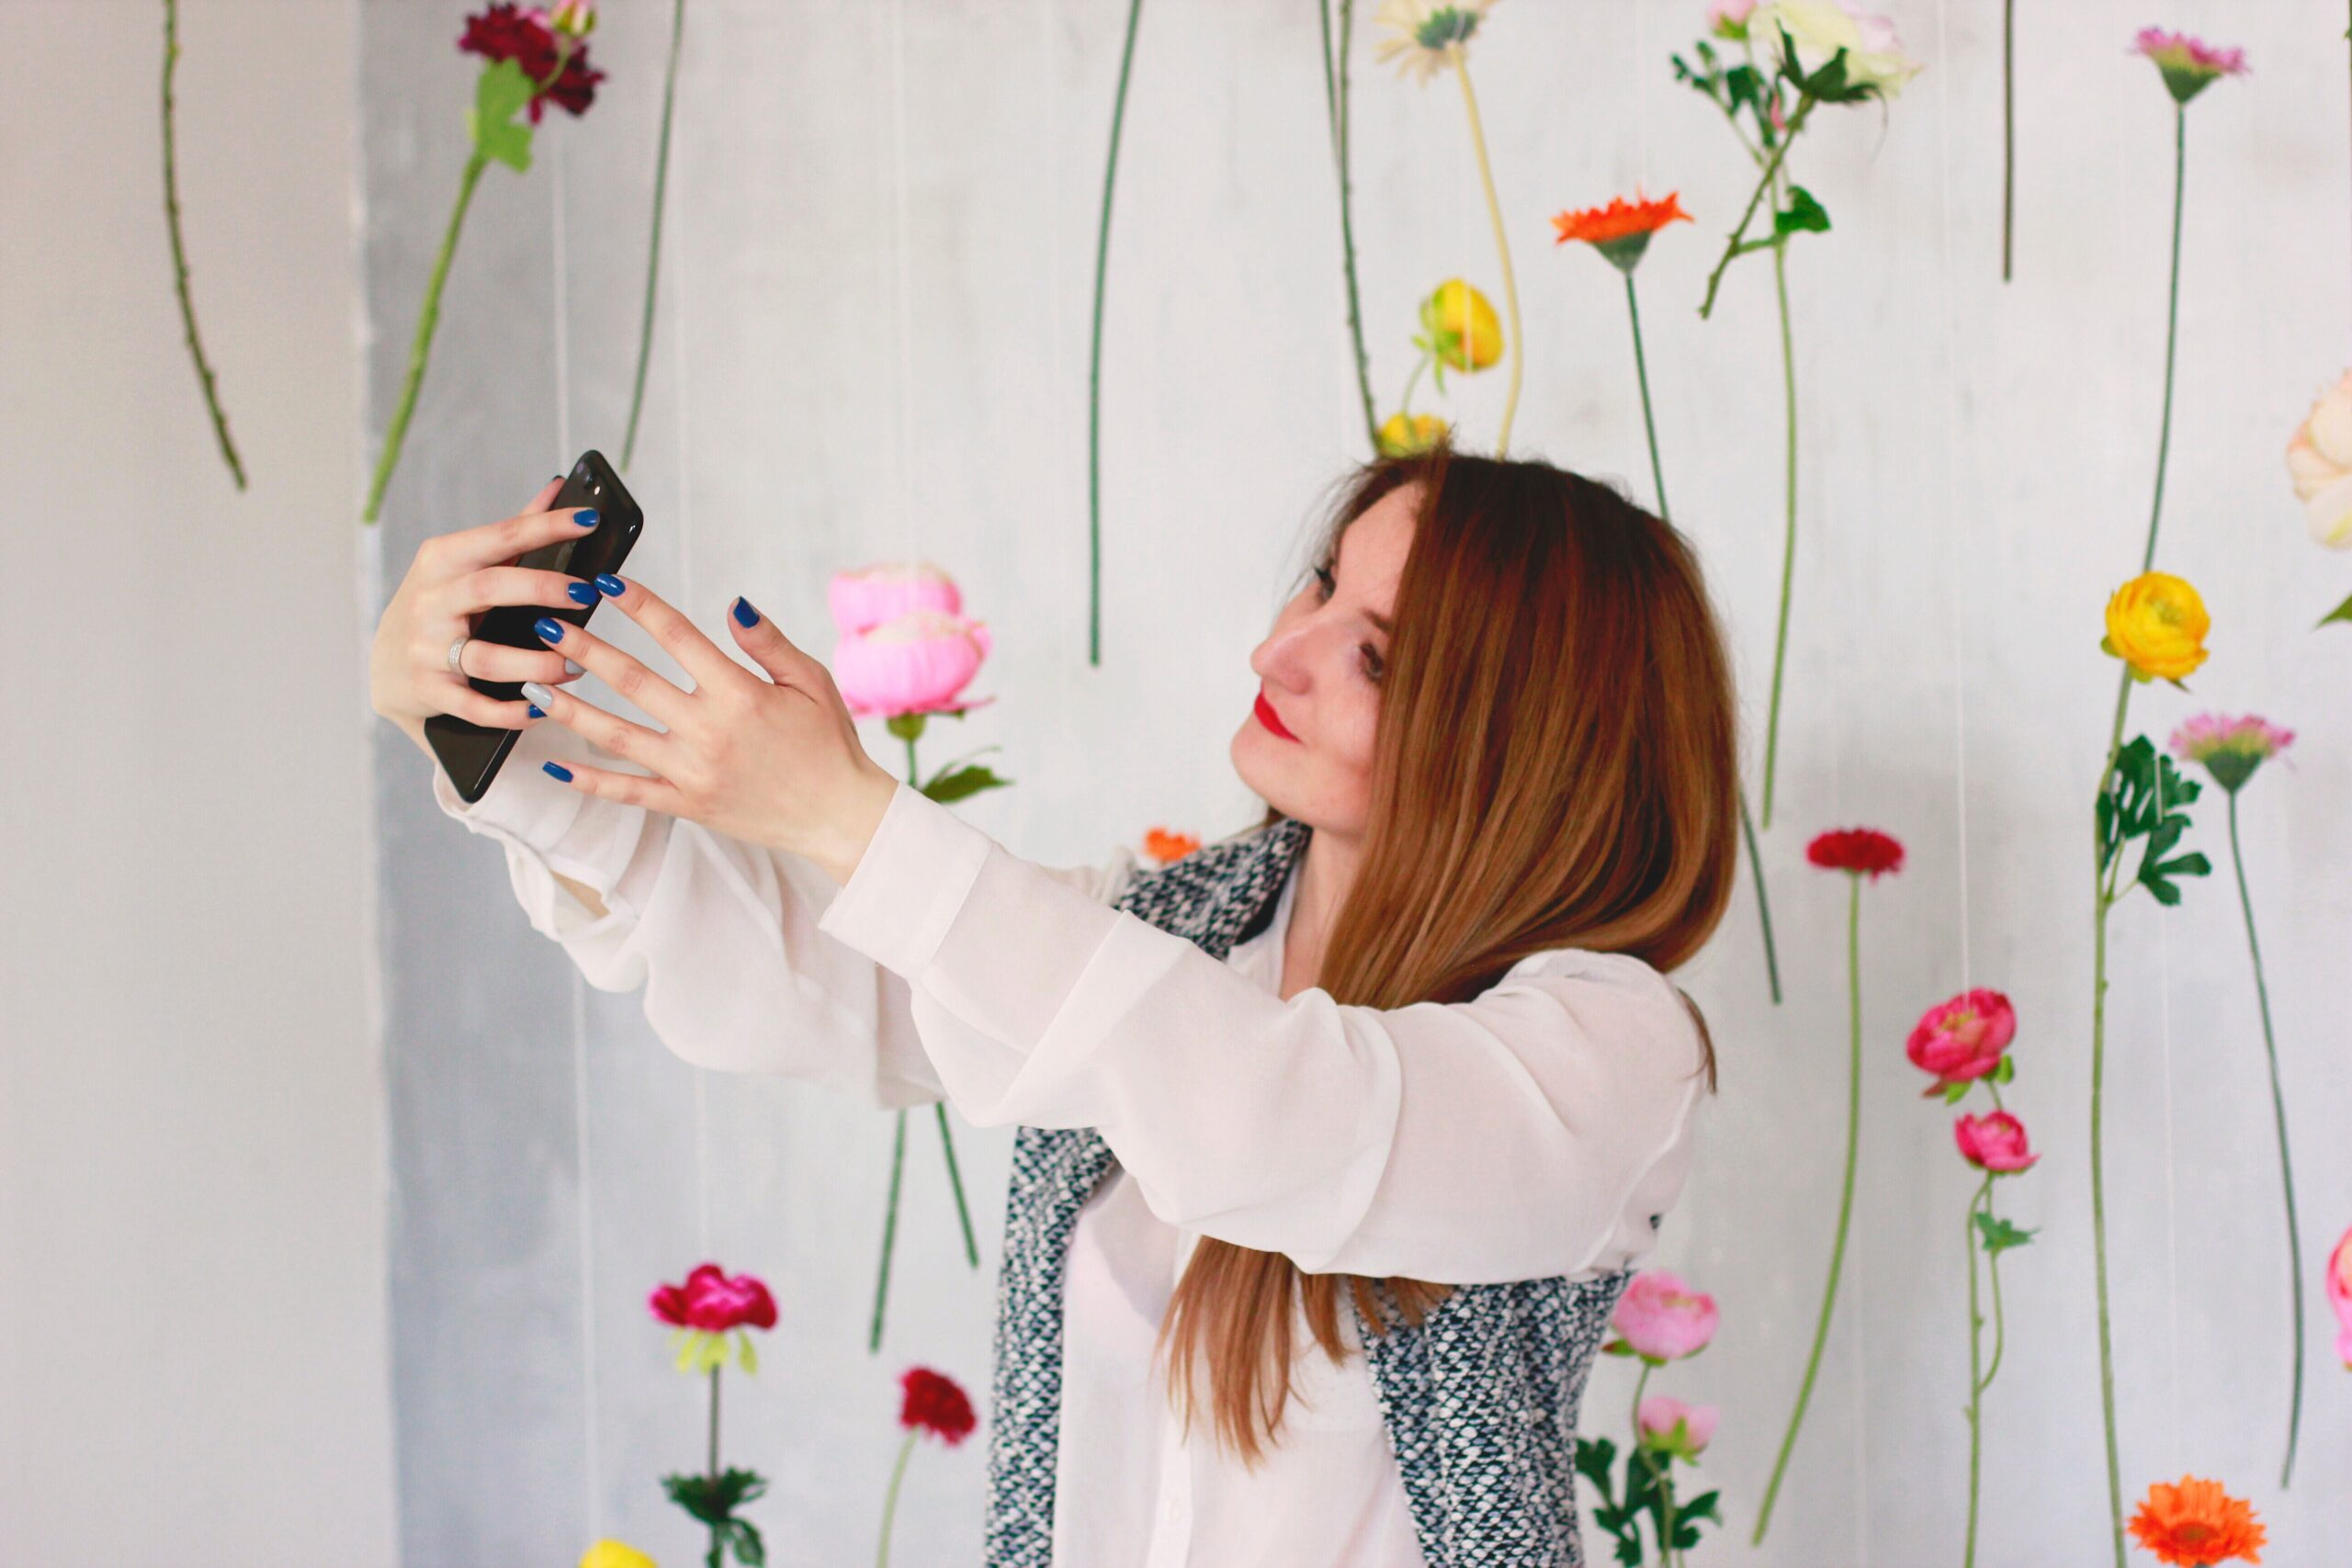 Young girl taking a selfie in front of a decorated wall.